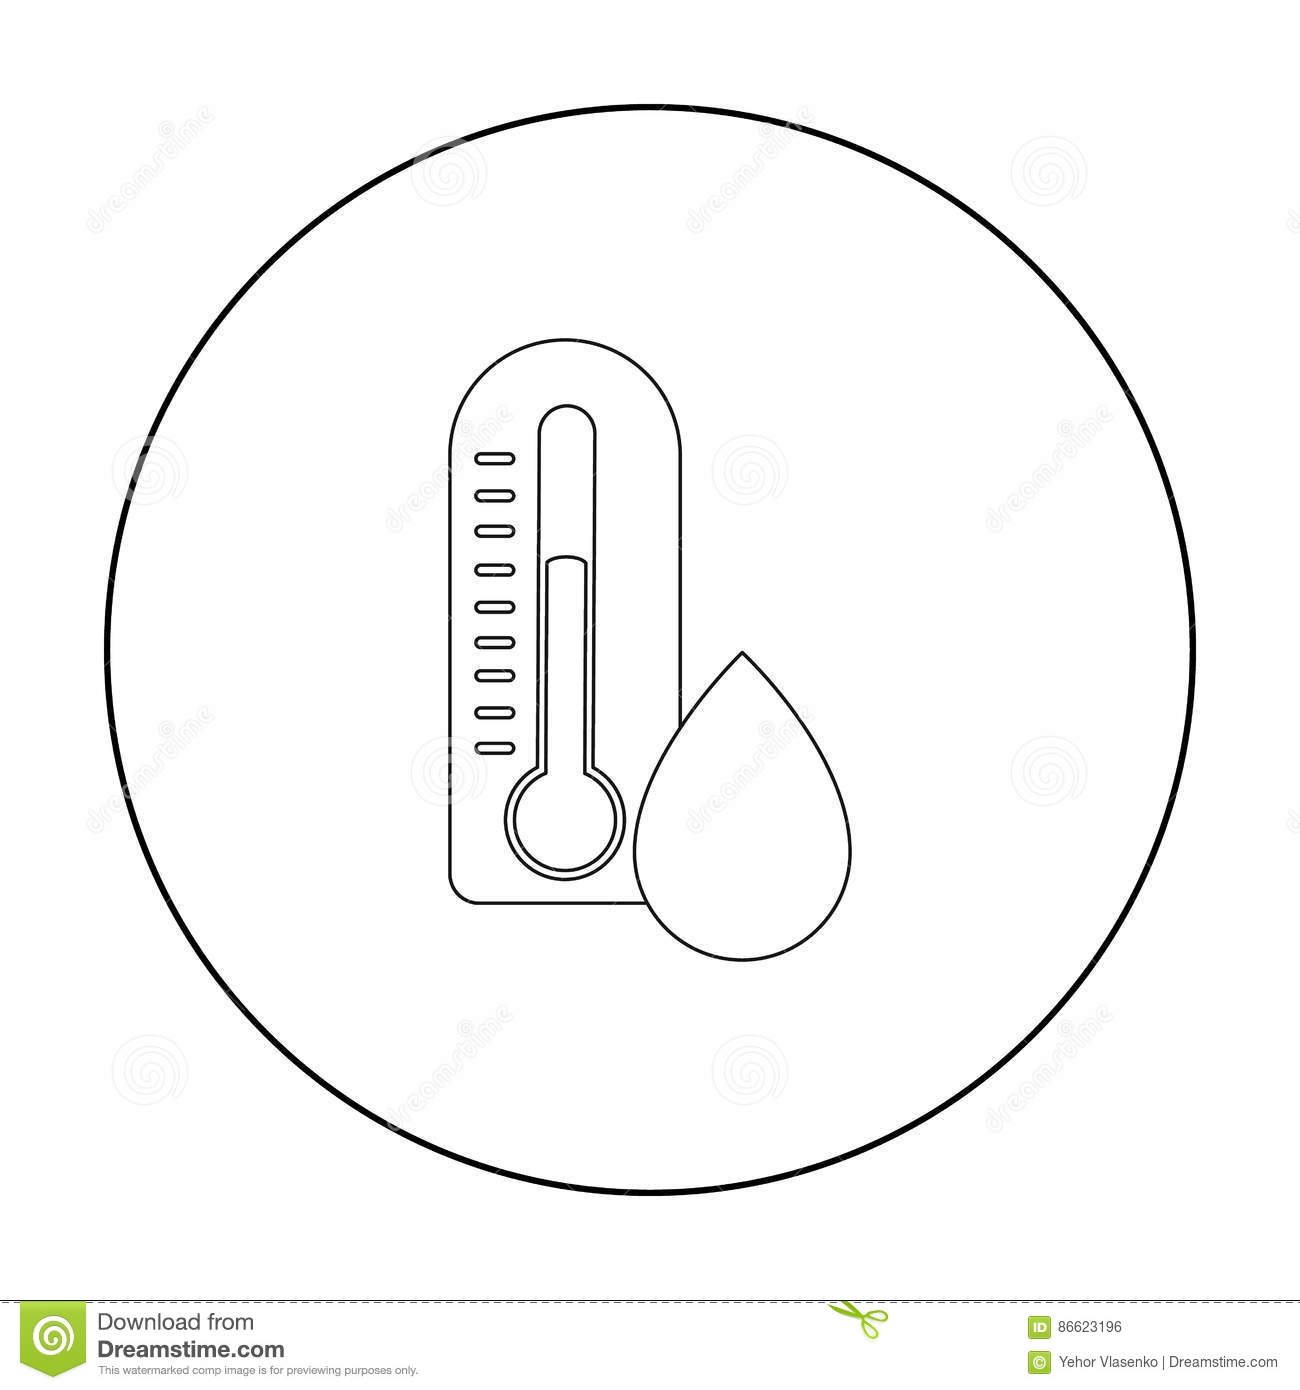 Damp day icon in outline style isolated on white background. Weather symbol stock vector illustration.